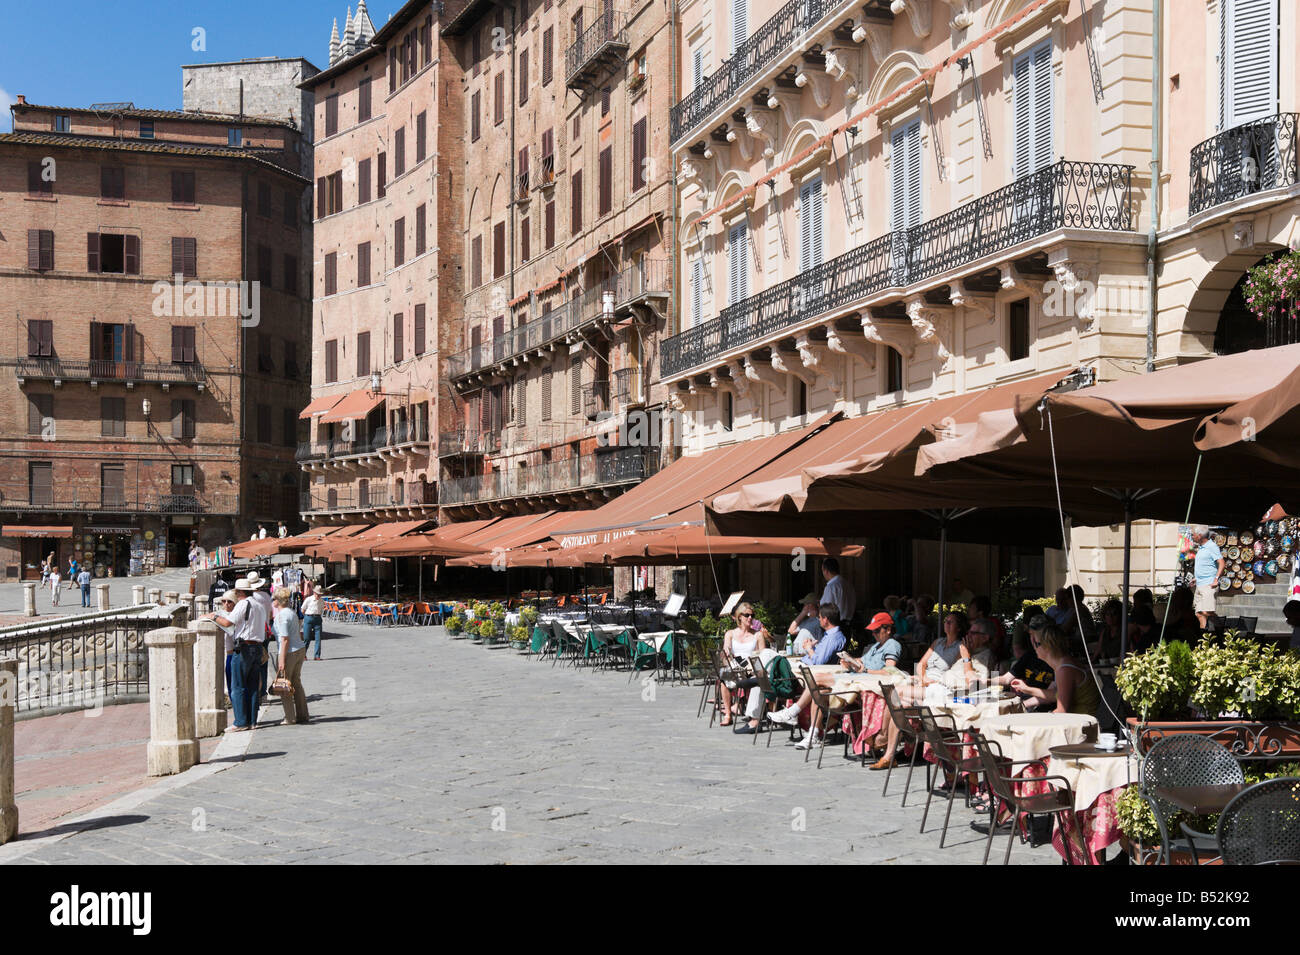 Sidewalk Cafes in The Campo Siena Tuscany Italy - Stock Image